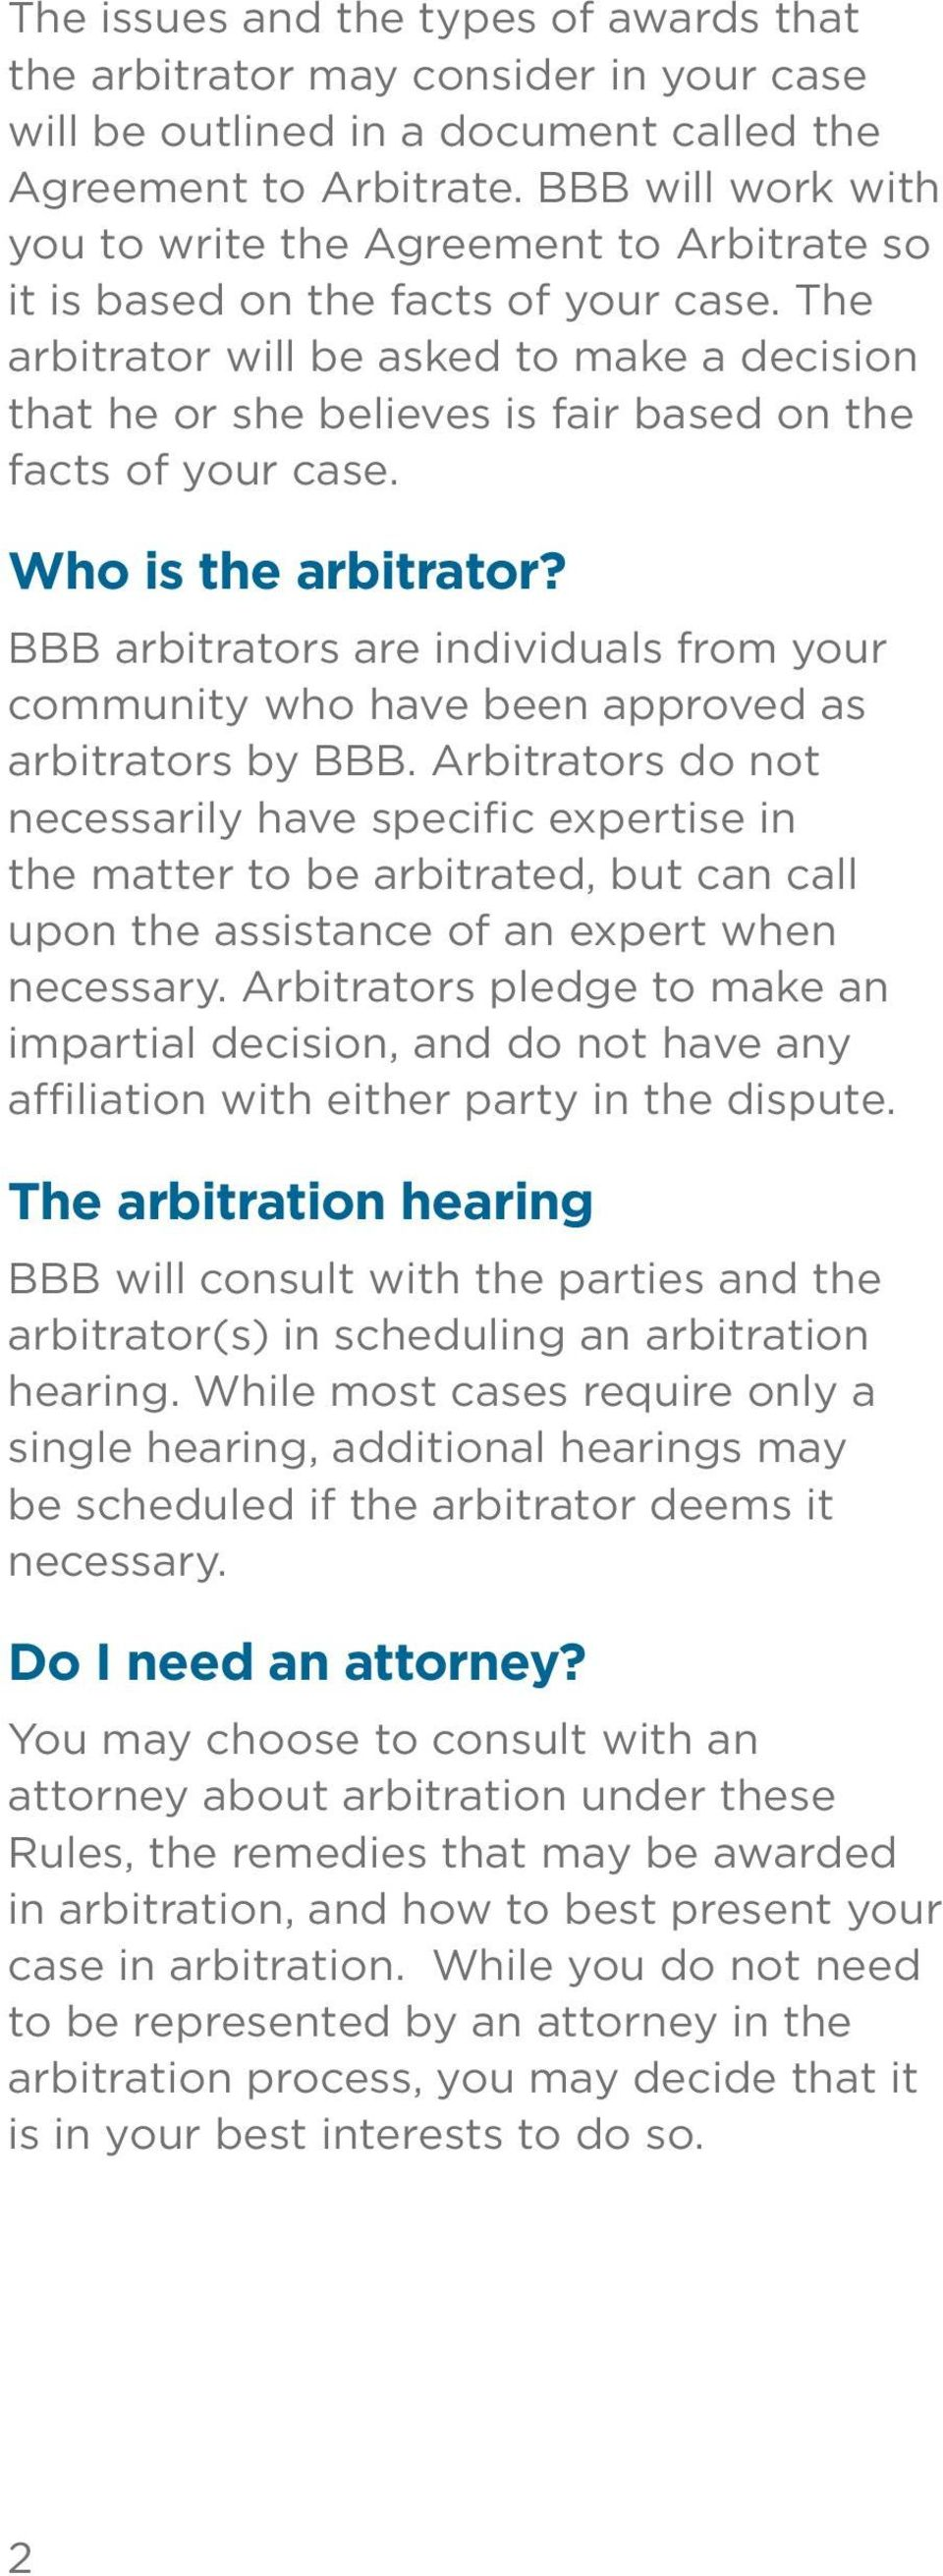 The arbitrator will be asked to make a decision that he or she believes is fair based on the facts of your case. Who is the arbitrator?